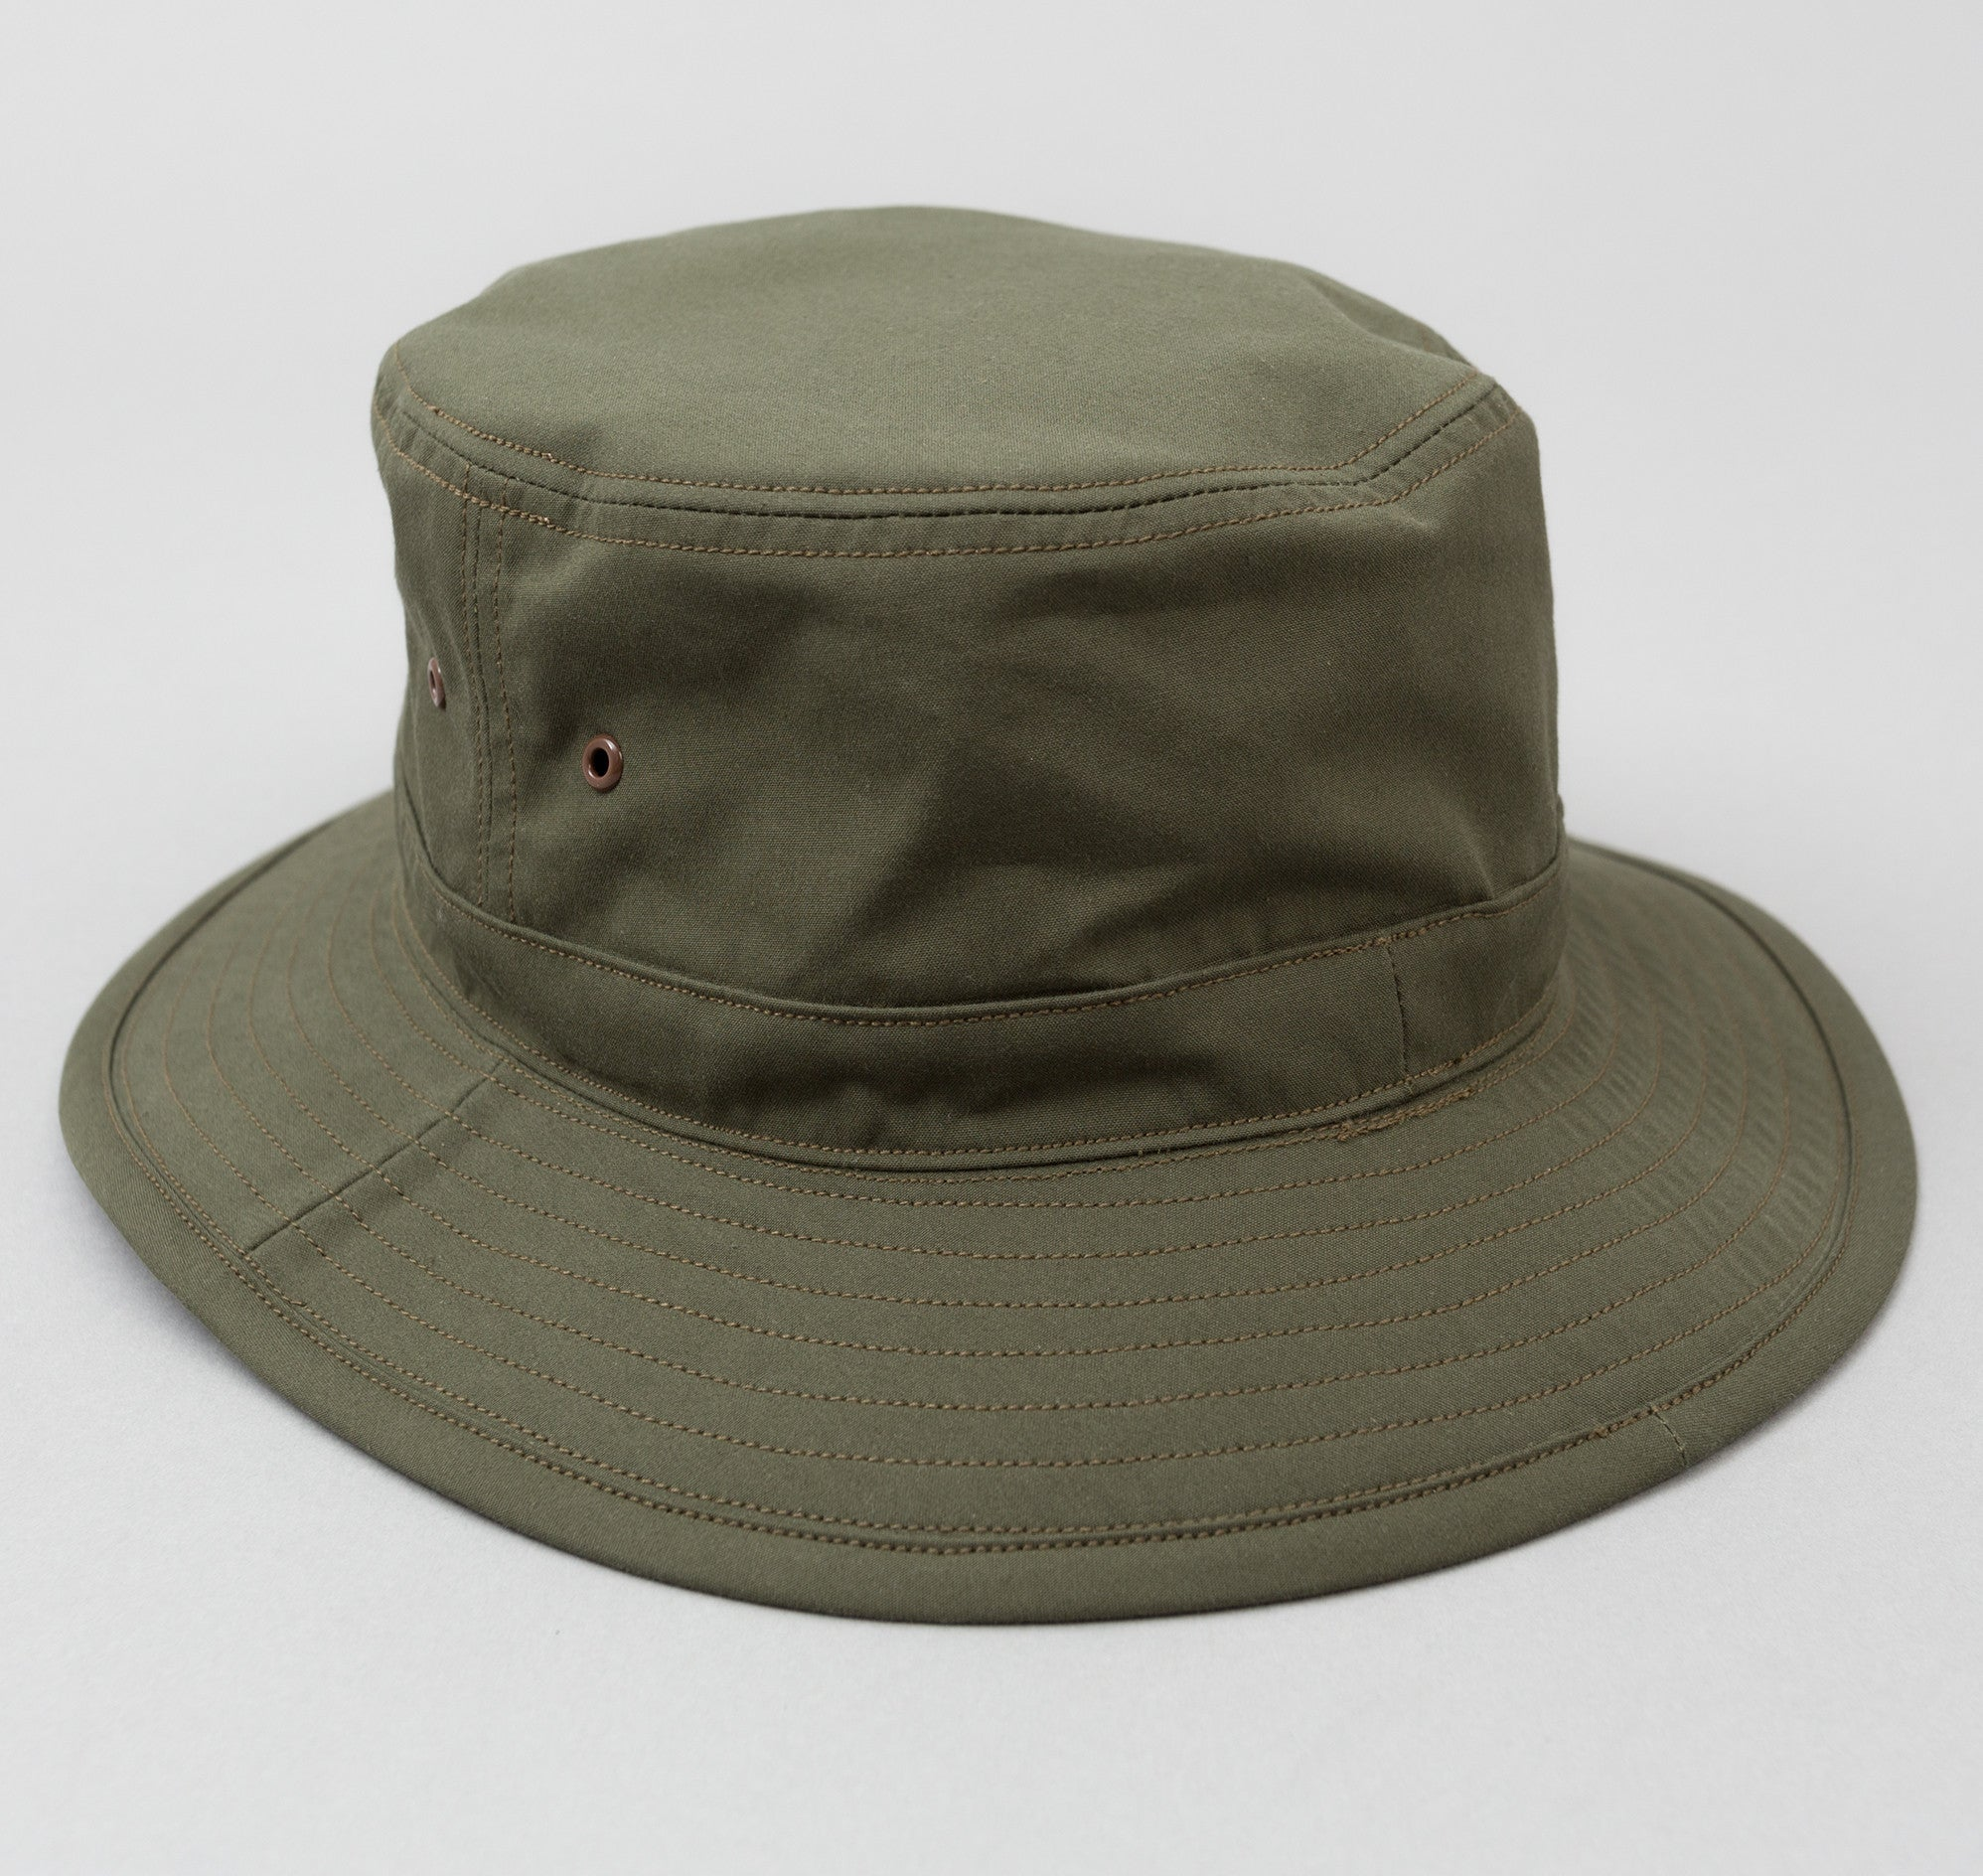 Phigvel Cyclist Bucket Hat, Olive